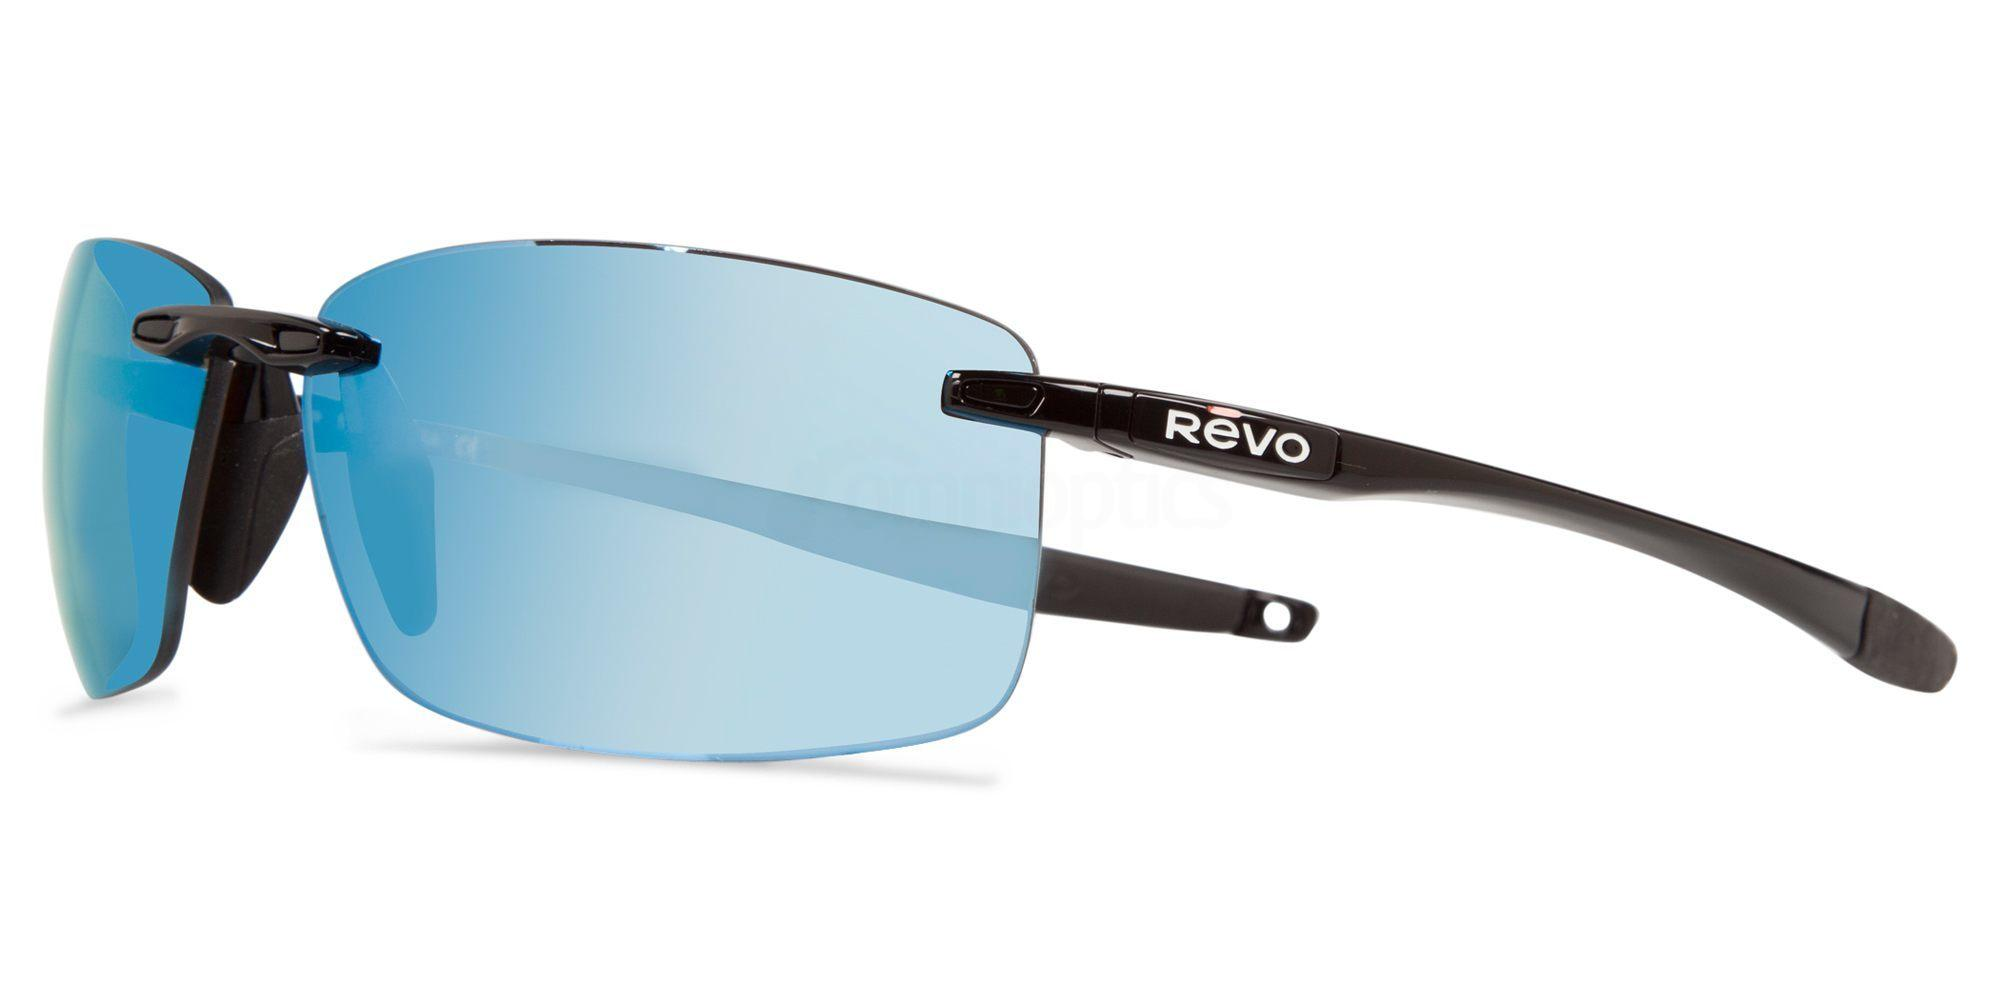 01BL Descend N - 354059 Sunglasses, Revo